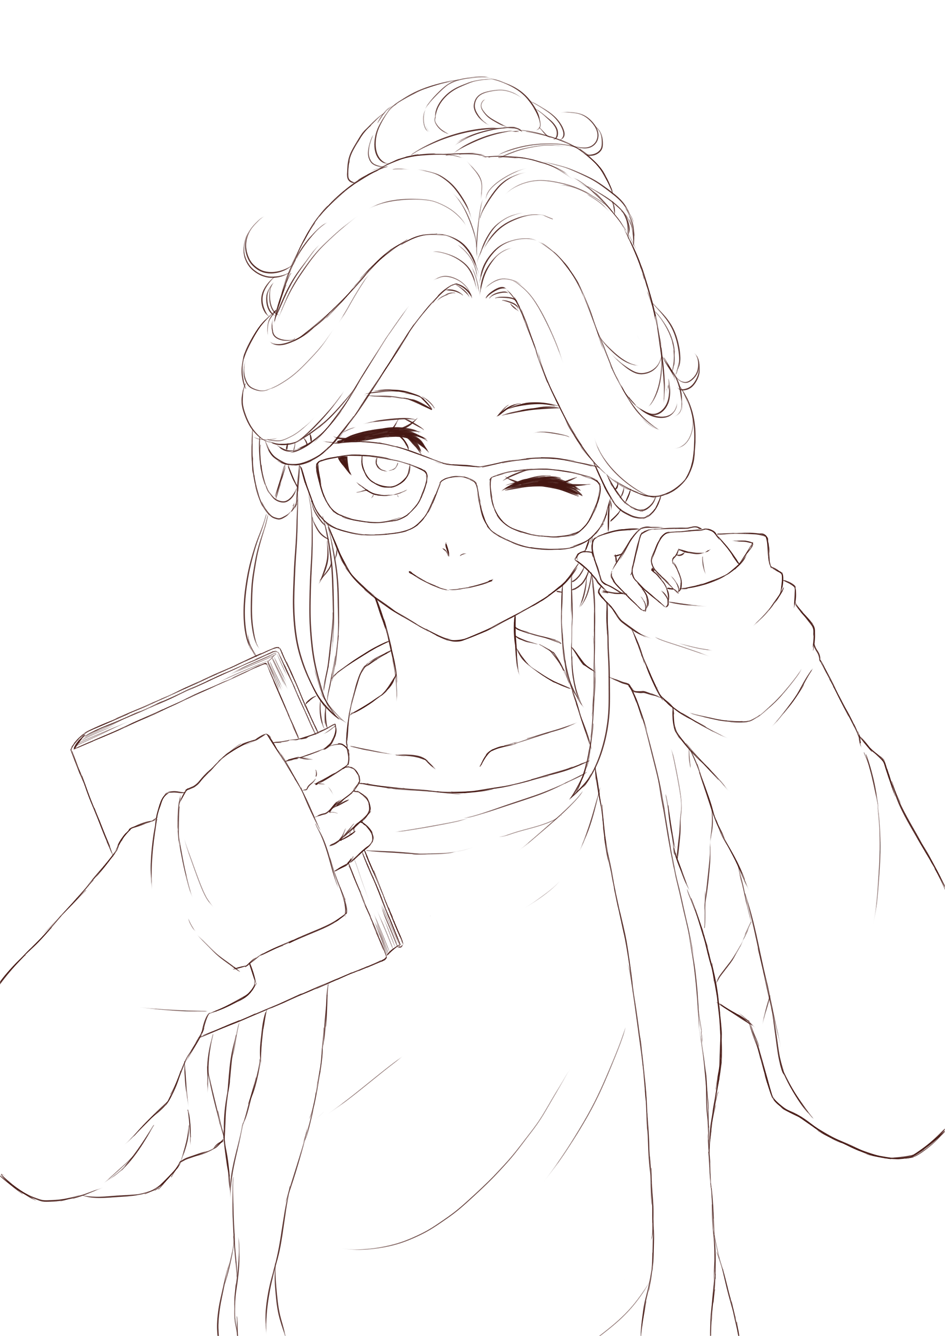 anime lineart transparent   Google Search   Anime stuff   Pinterest     anime lineart transparent   Google Search